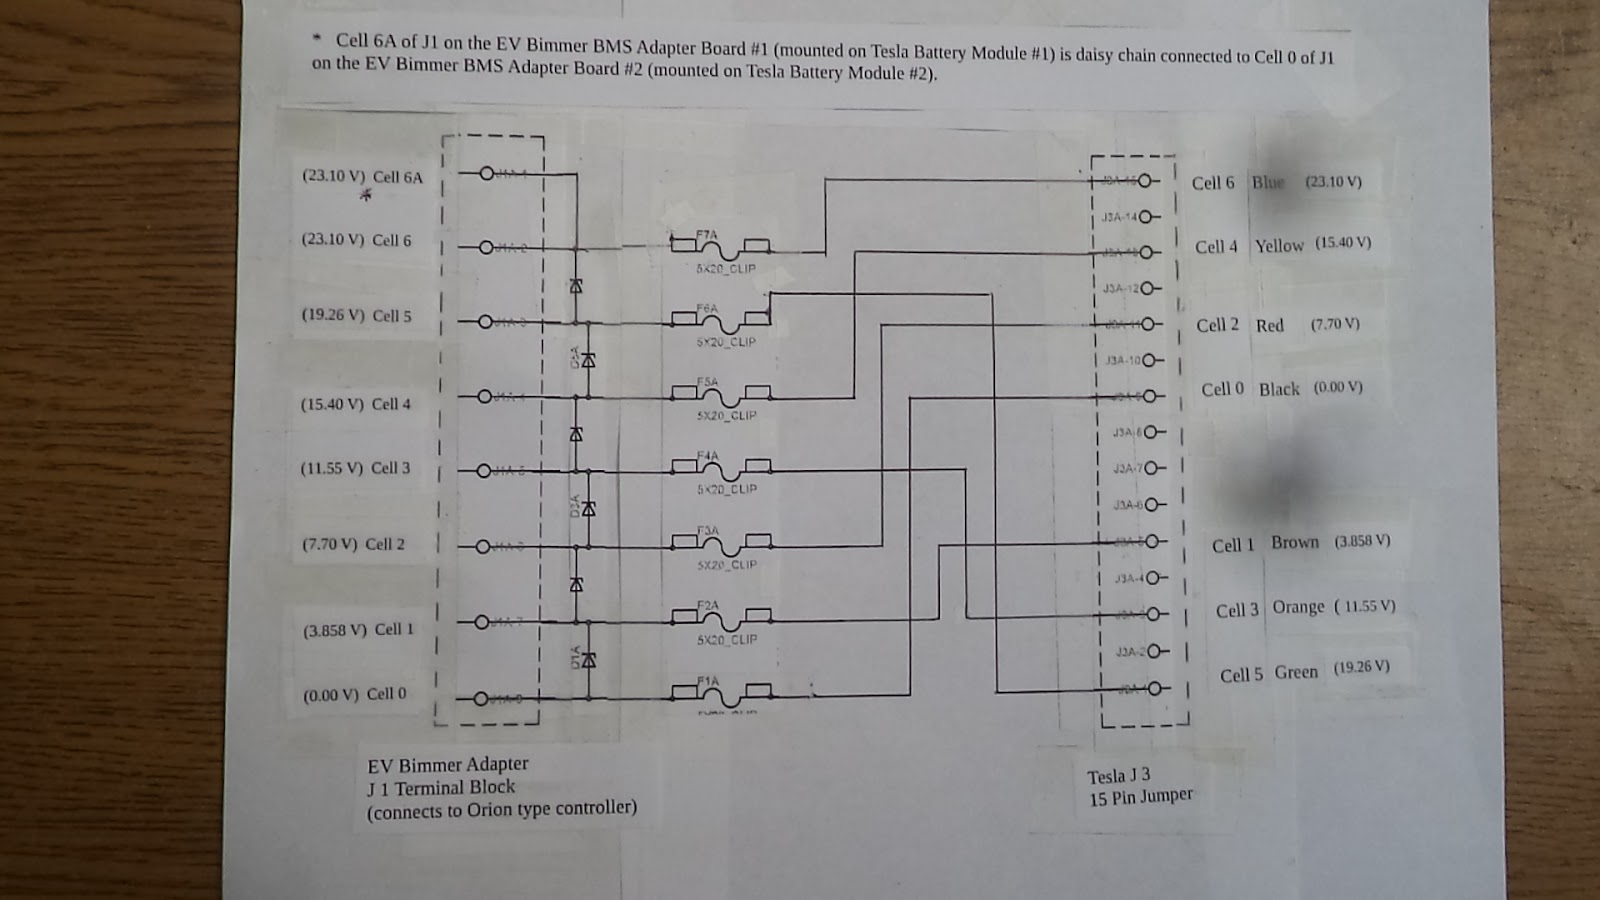 small resolution of dsc06336 image of the preliminary wiring diagram that connects the orion to tesla module number 1